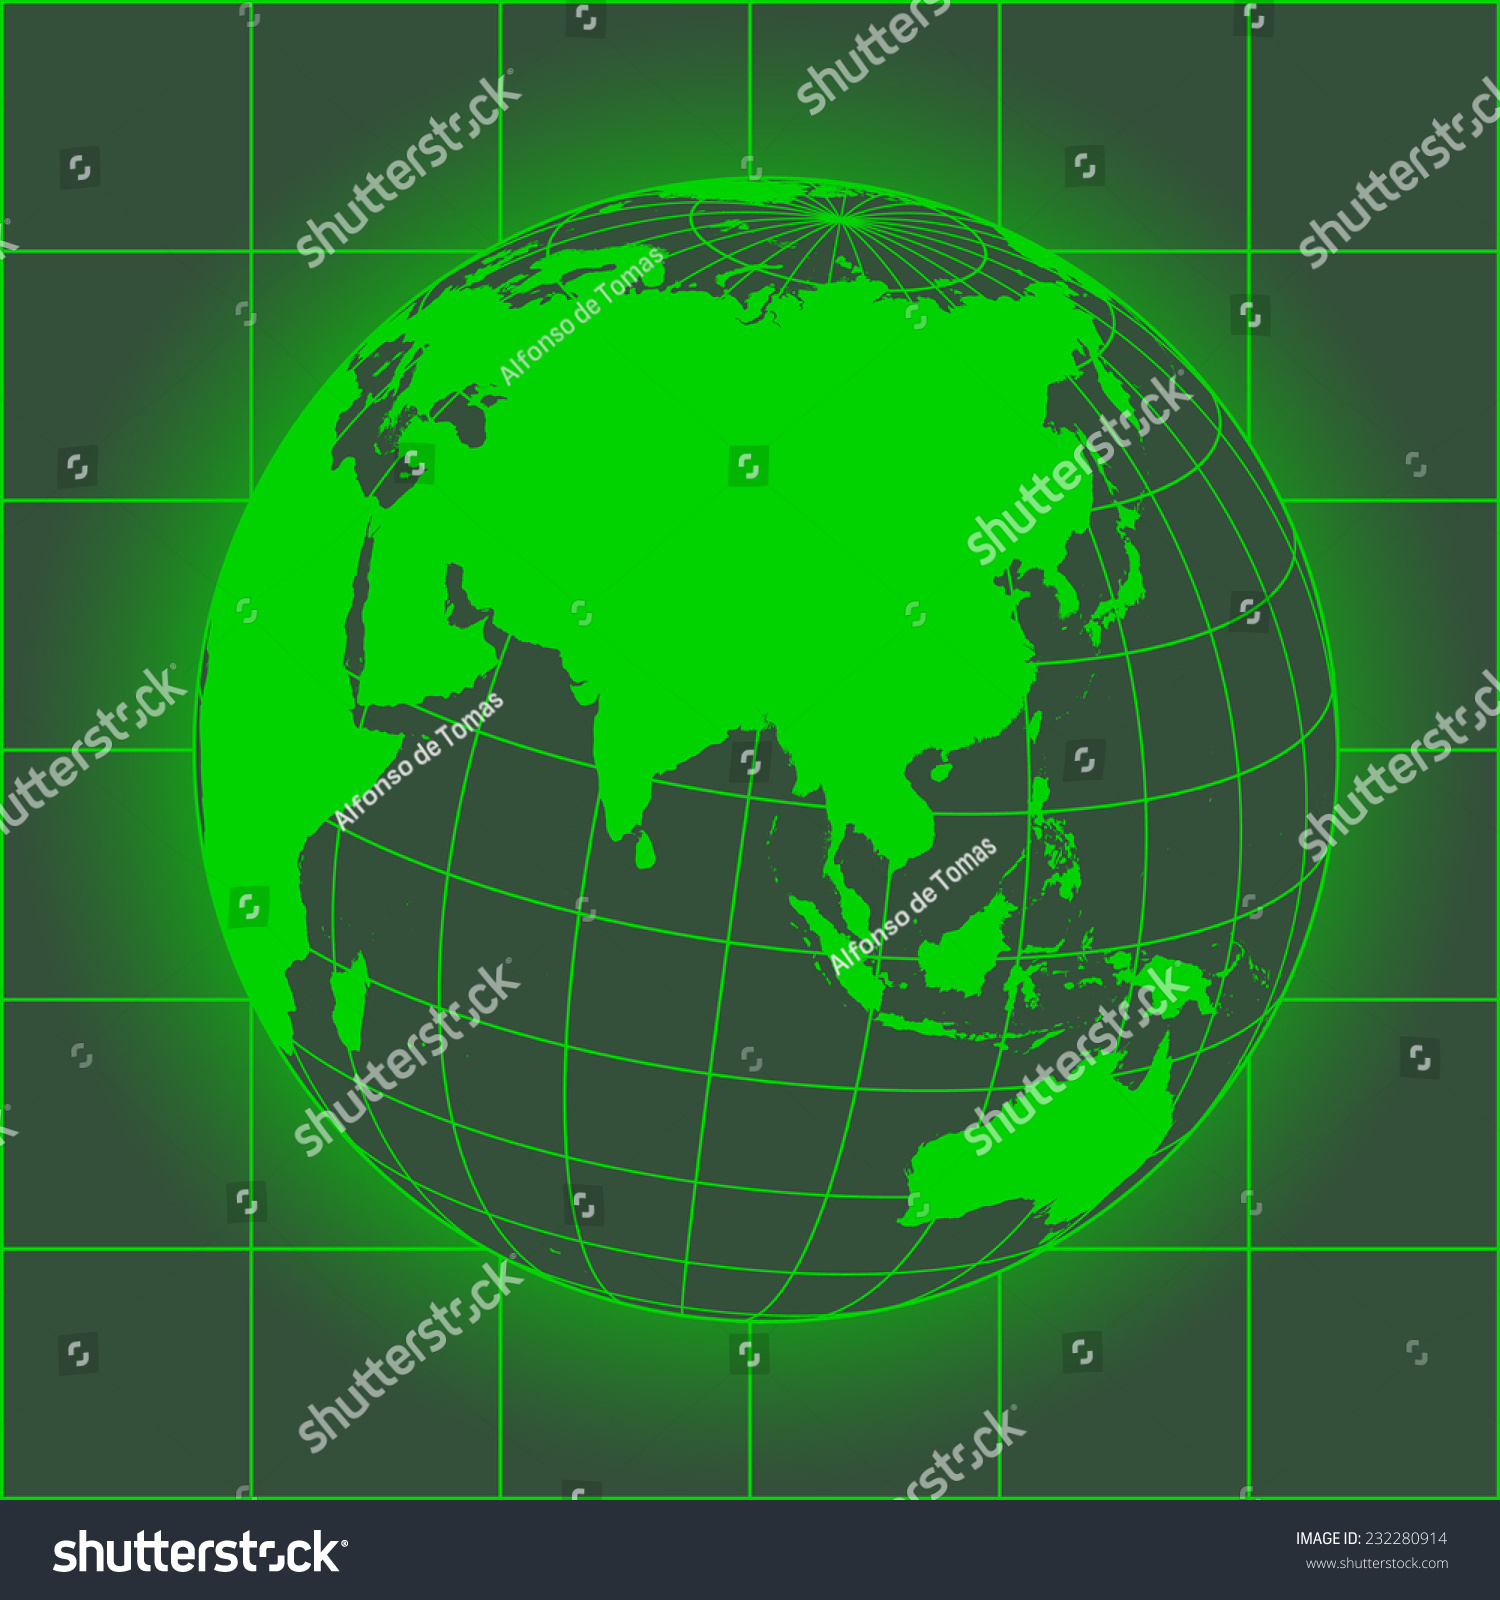 Green asia map australia russia africa stock illustration 232280914 green asia map australia russia africa north pole earth globe gumiabroncs Images